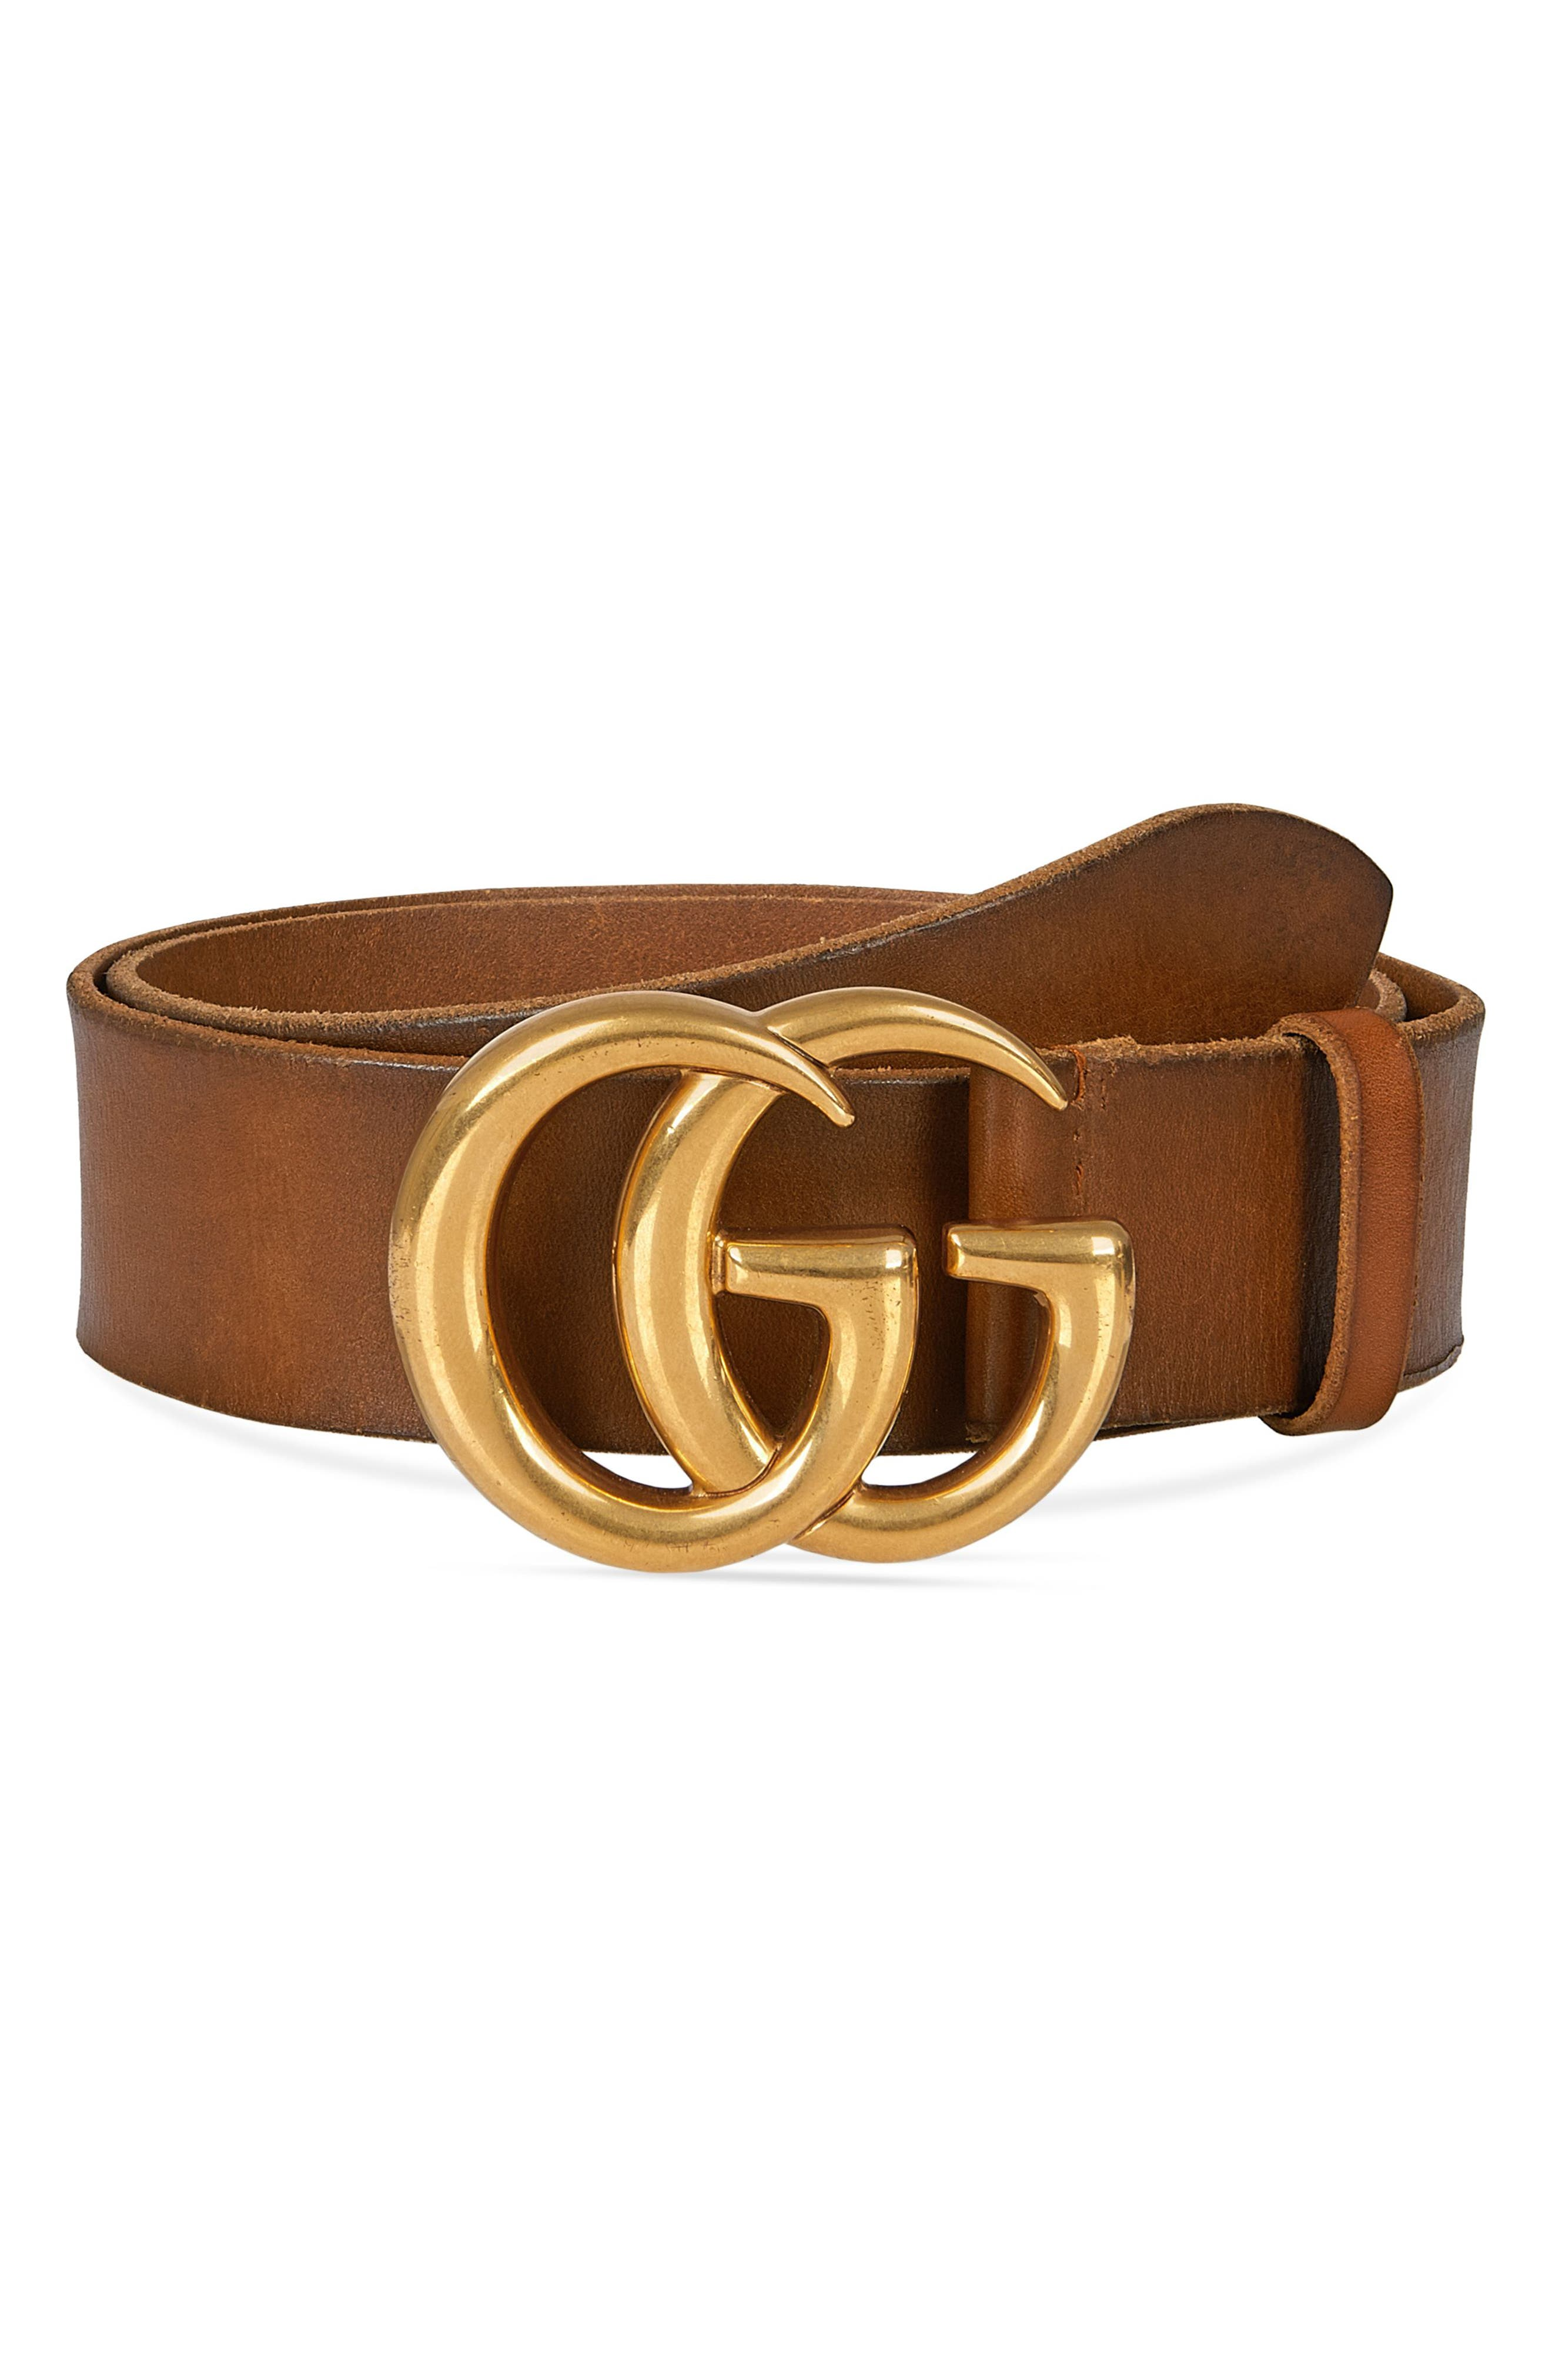 Main Image - Gucci Distressed Leather Belt